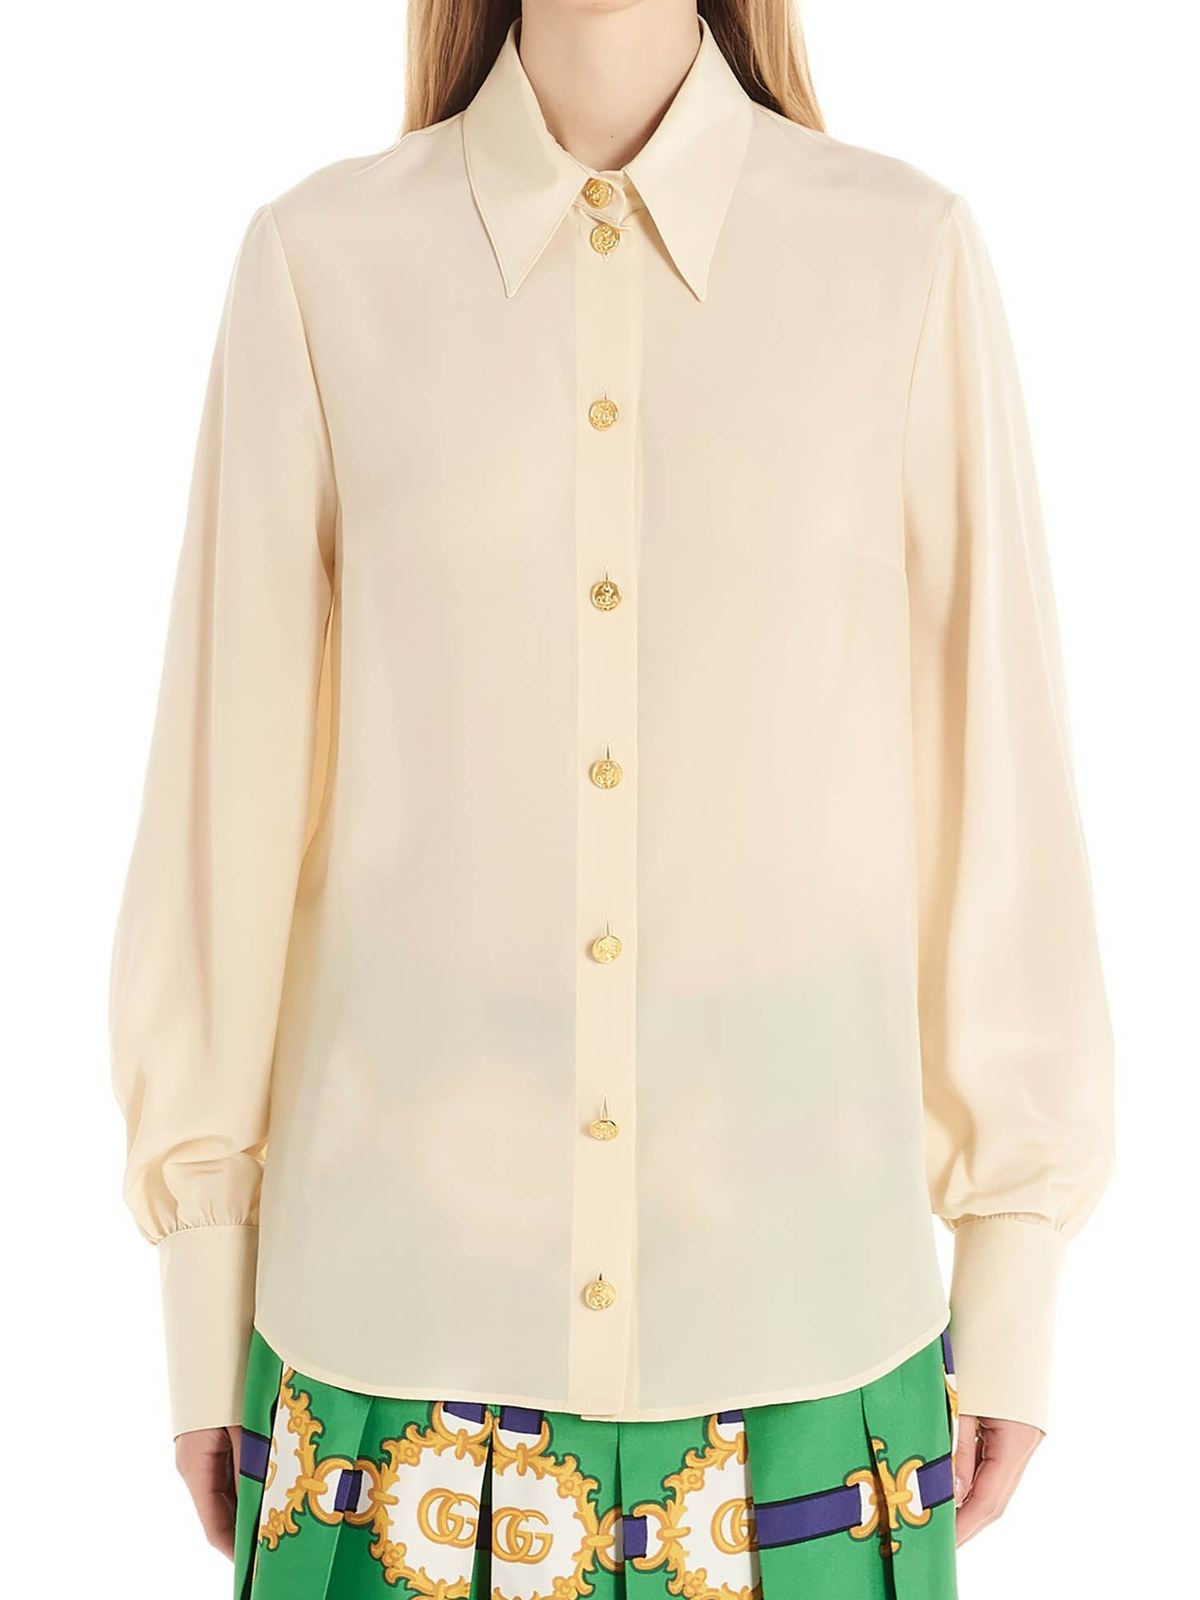 GUCCI LOGO BUTTONS PUFF SLEEVE SHIRT IN BEIGE